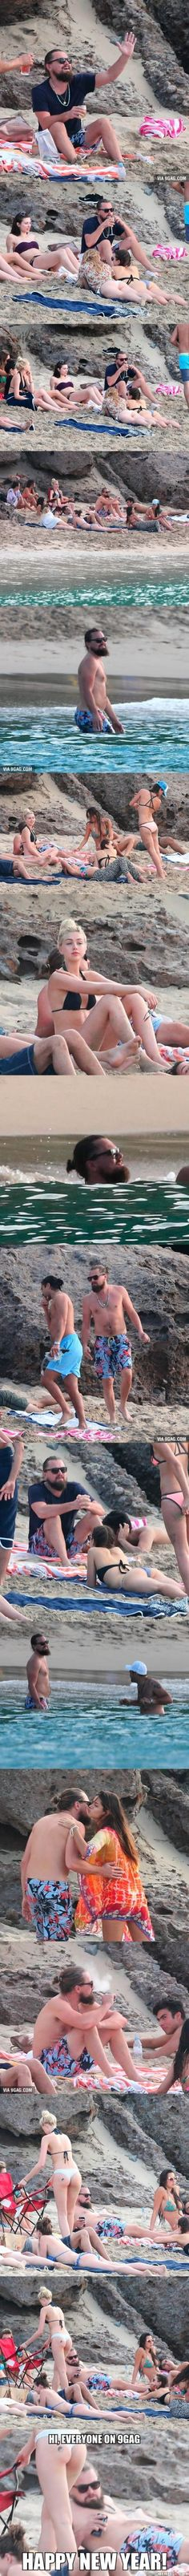 He Is The King Of The World! Leonardo DiCaprio's Happy New Year